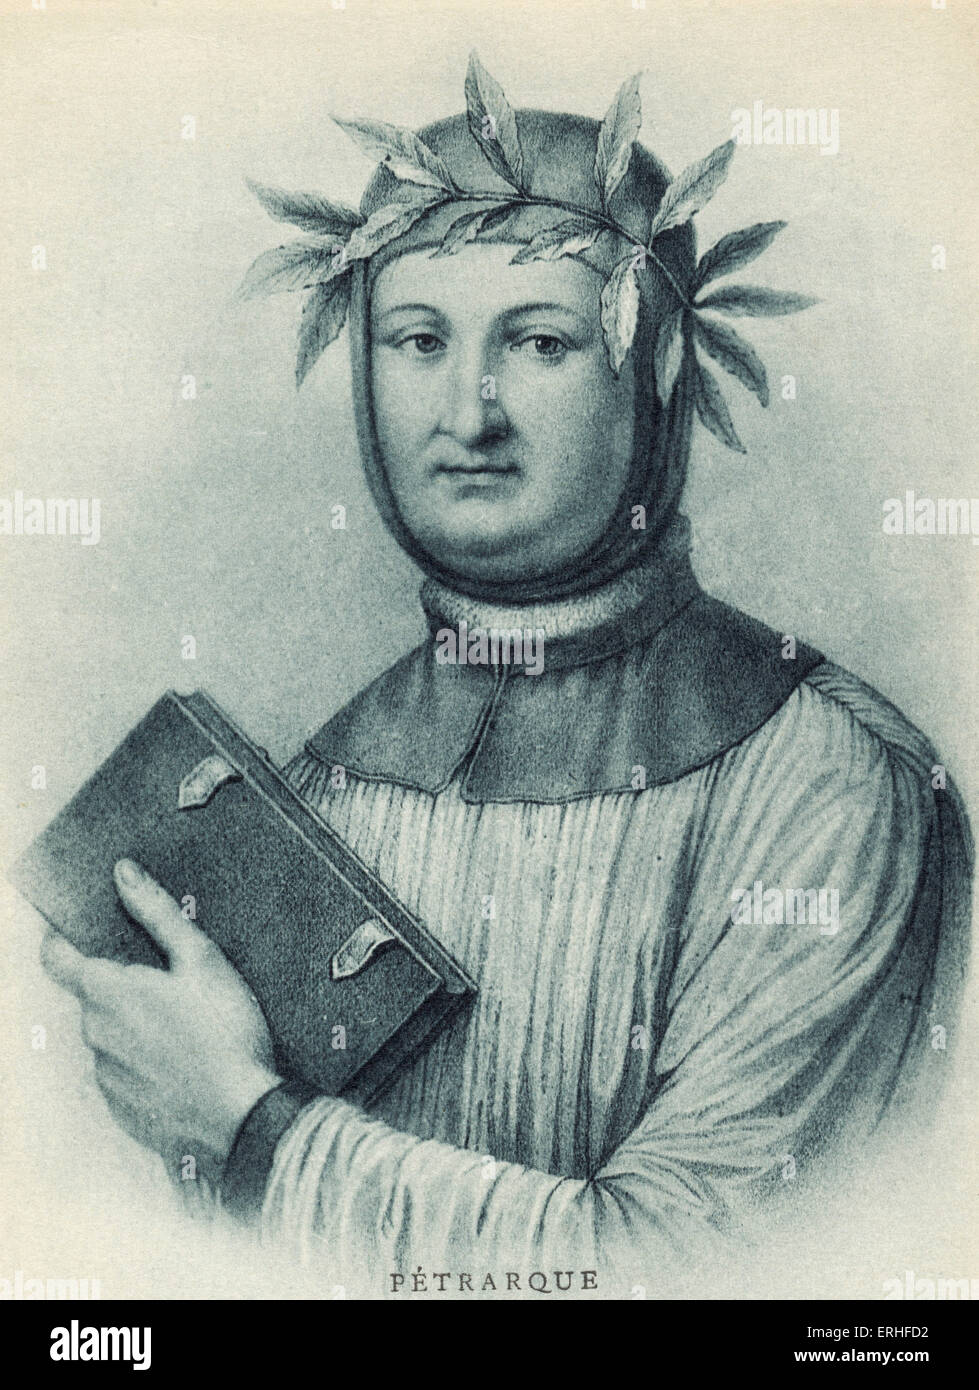 Francesco Petrarch portrait   14th century  Italian Poet. His poems have been set to music by Schubert, Monteverdi - Stock Image